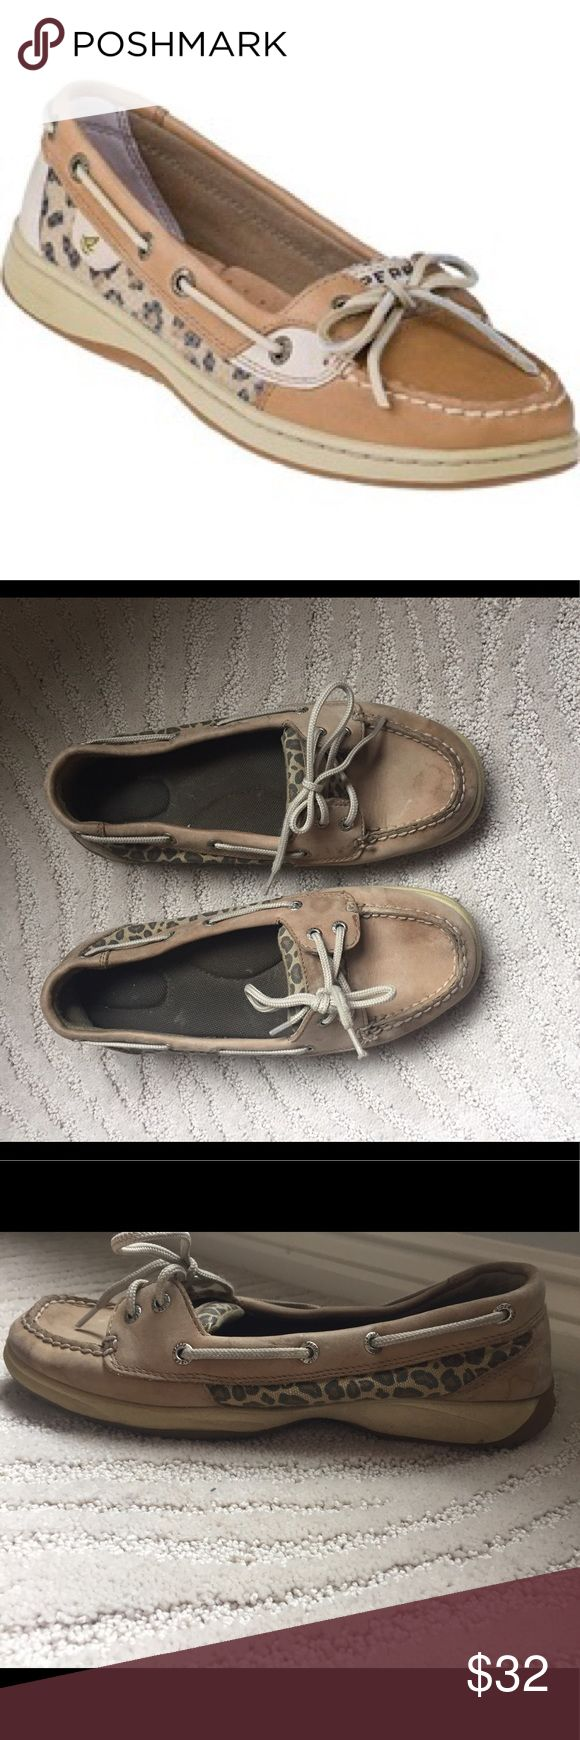 Sperry's Top Sider shoes💛 Some light usage only worn a couple times but water marks from rain. Still is good condition and not stretched out at all! Sperry Top-Sider Shoes Flats & Loafers